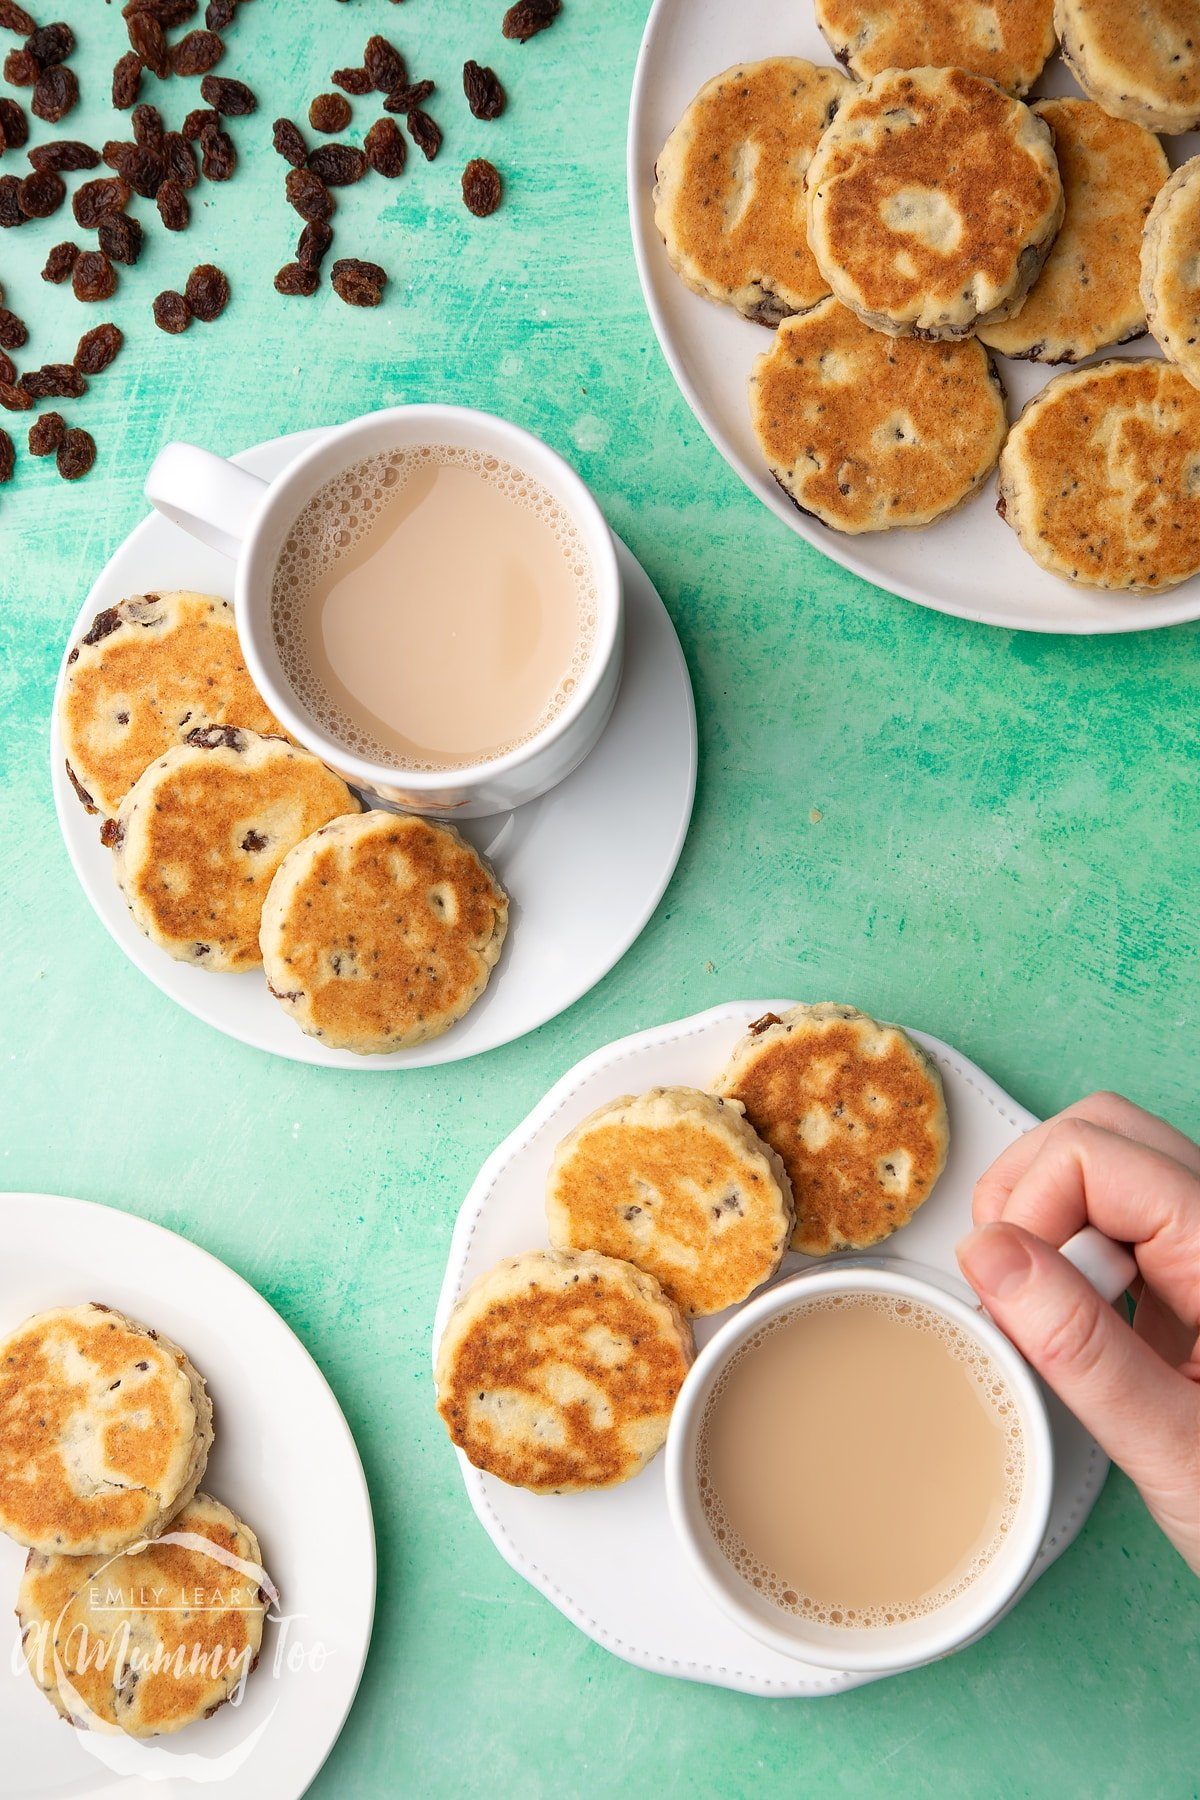 Vegan Welsh cakes arranged on a white plates with cups of tea. A hand reaches in to take a cup.